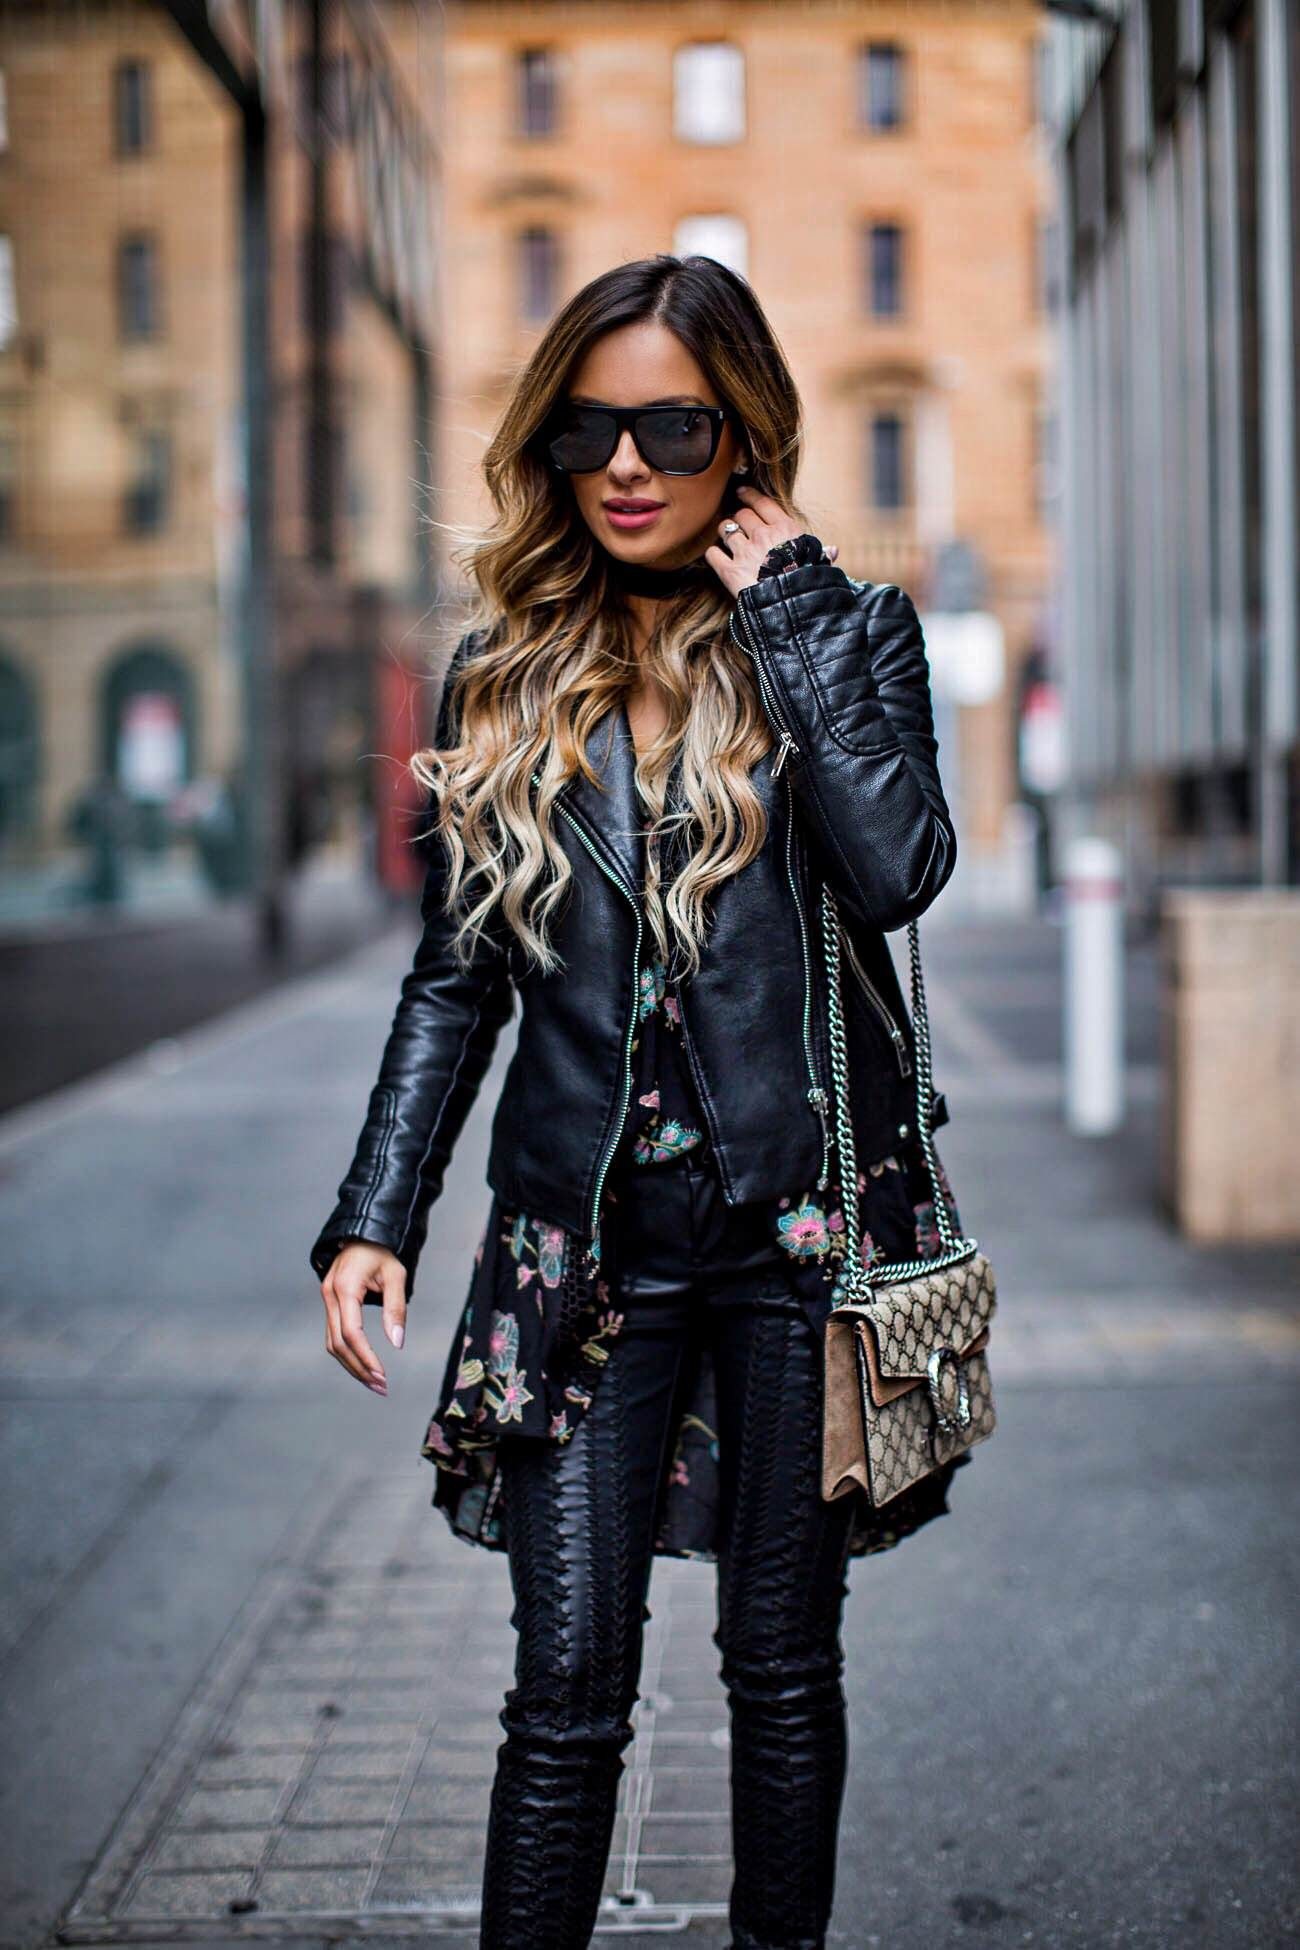 518669eaca47 Fashion blogger Mia Mia Mine wearing a free people black tunic dress and  Blank NYC embroidered leather pants from shopbop.com